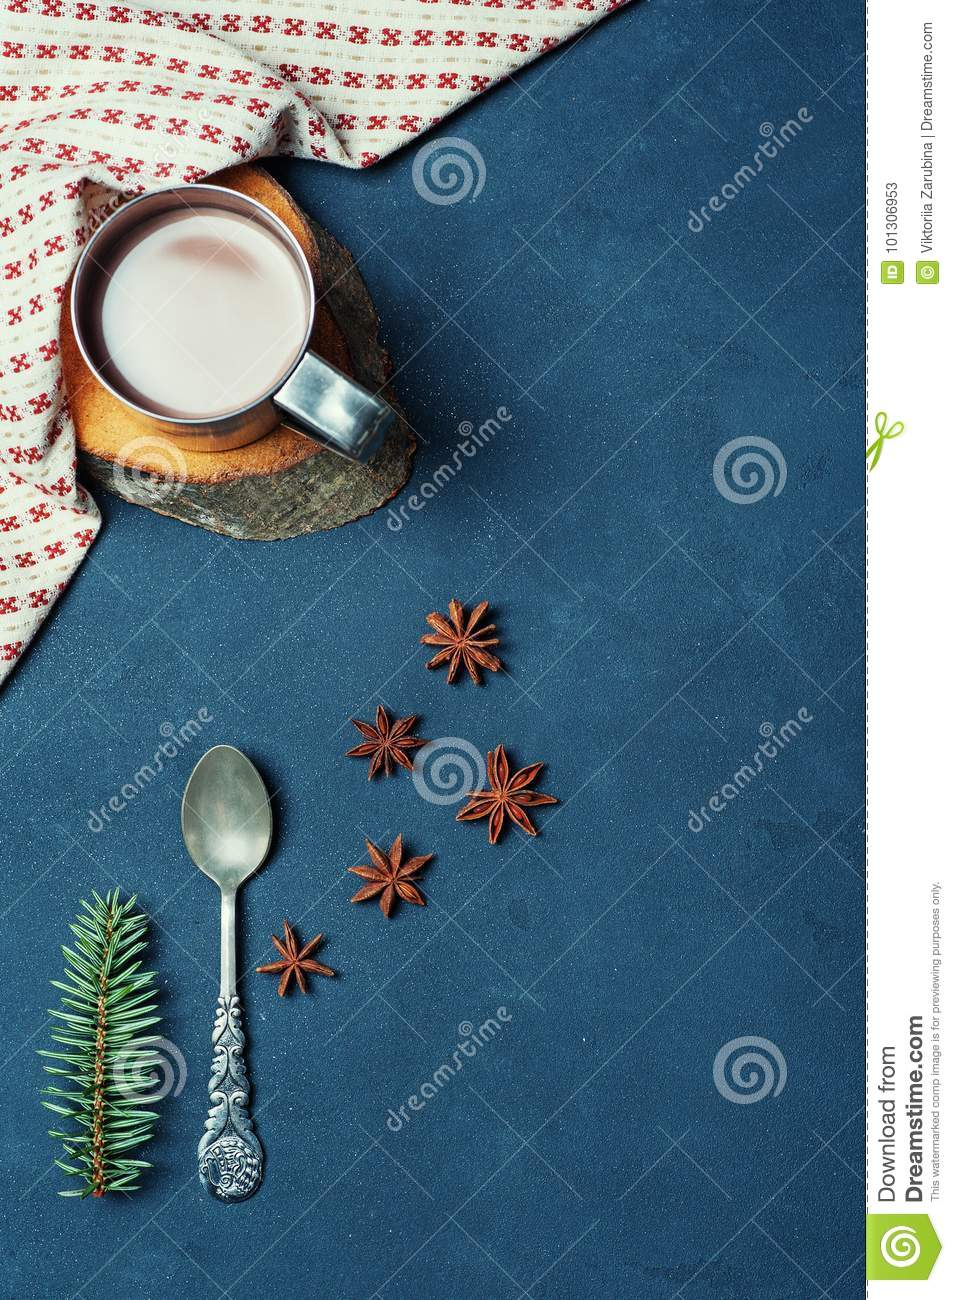 Frame of Cup of Cacao Coffee Beans Cinnamon sticks Spoon and Fir Branch on Dark Texture Table decorated Napkin. Kitchen Ingredient